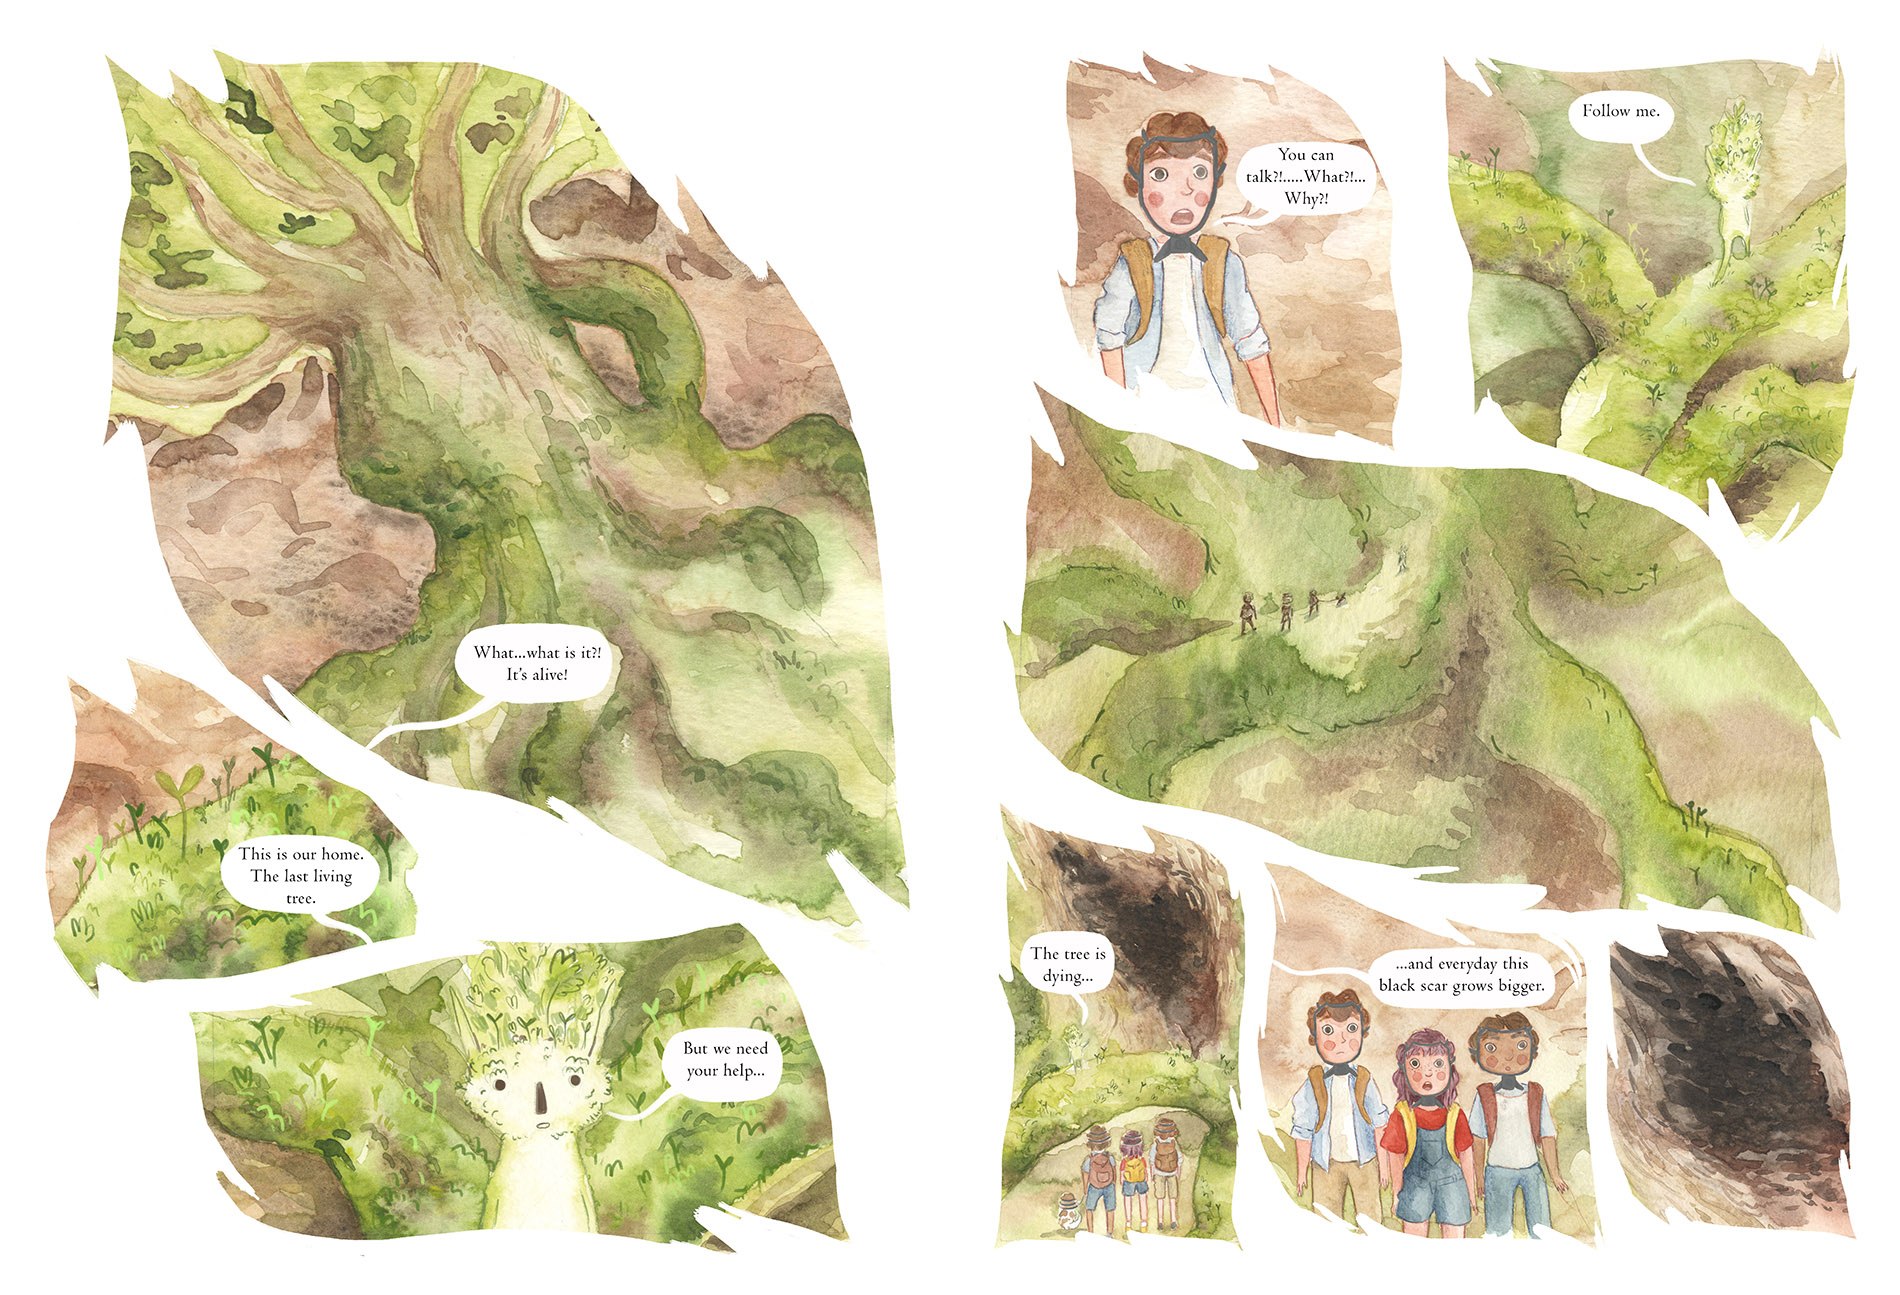 Double page spread from Roots, a children's graphic novel.